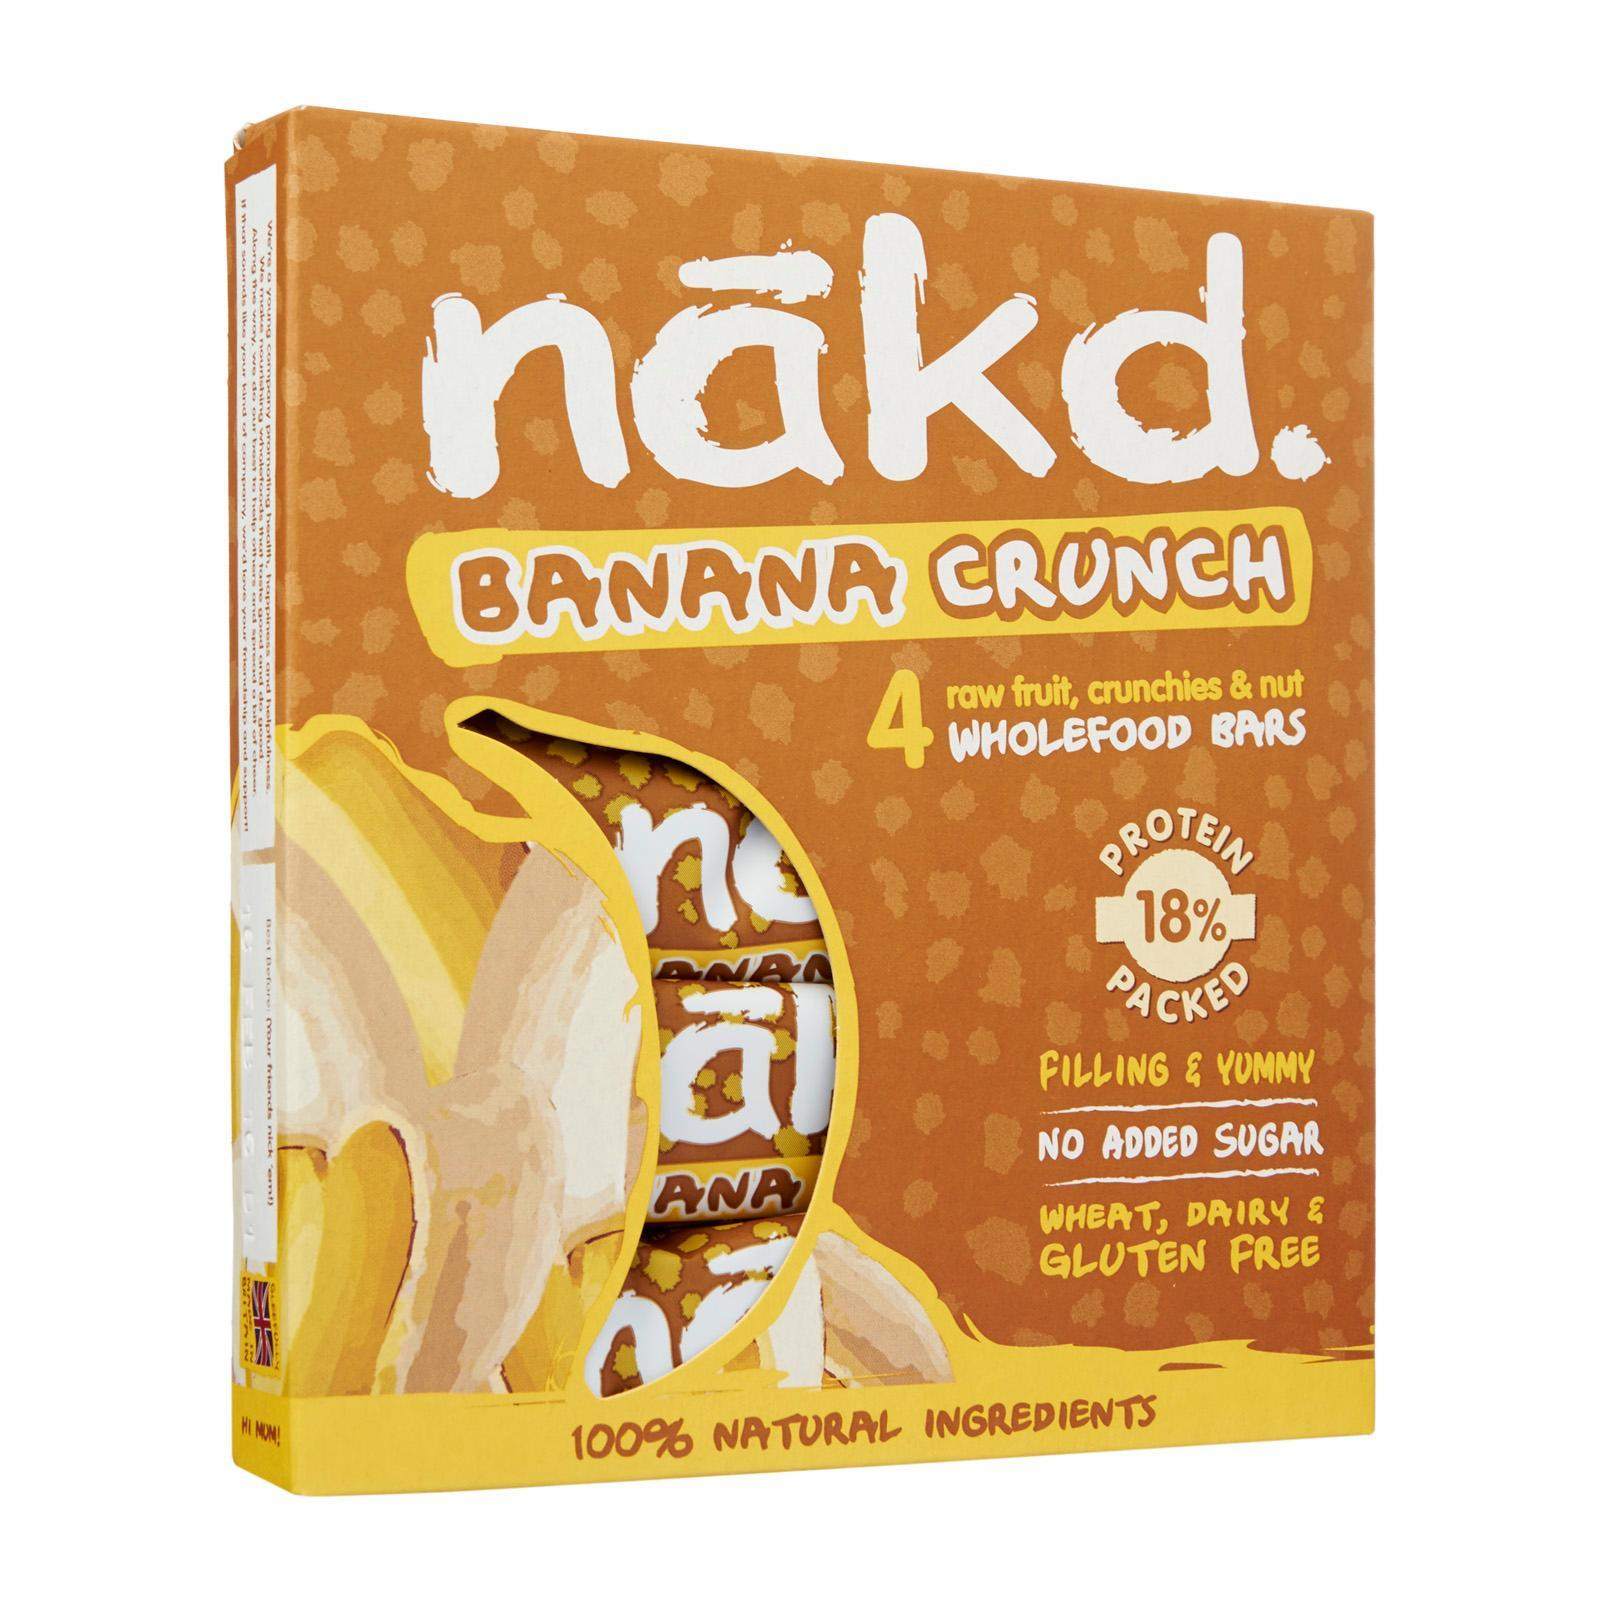 Nakd Gluten Free Banana Crunch Raw Fruit Crunchies And Nut Wholefood Bars By Redmart.